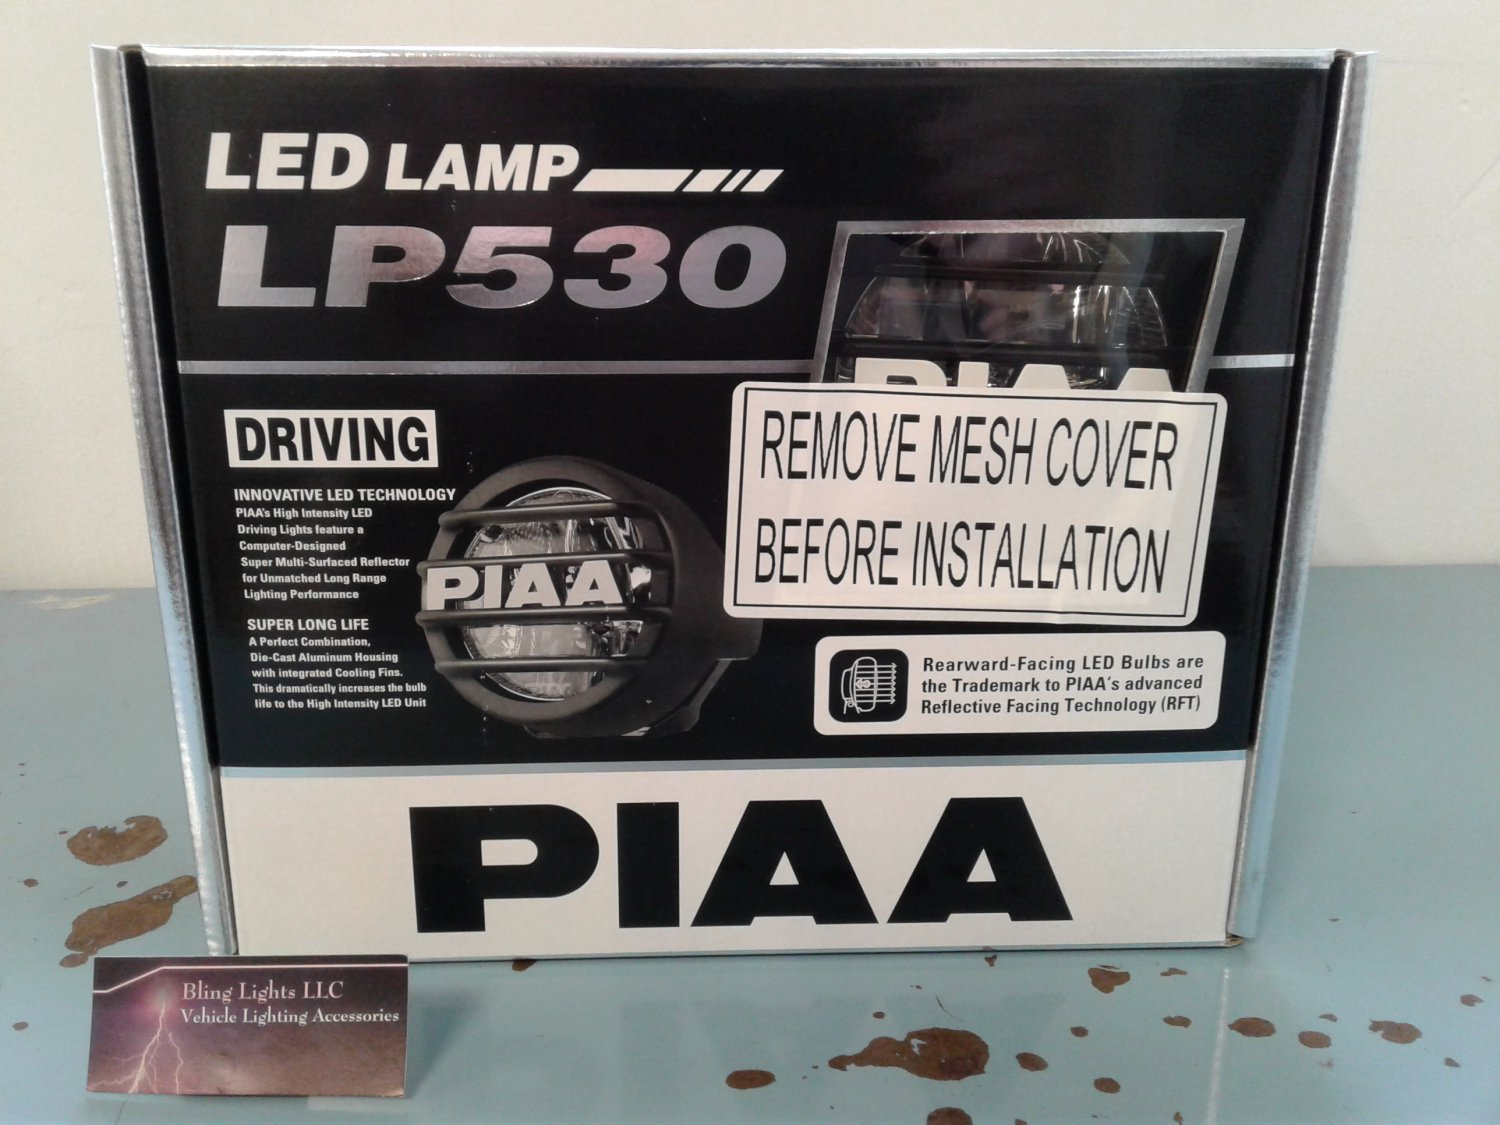 PIAA LP530 LED Driving Lamp Kit 5372